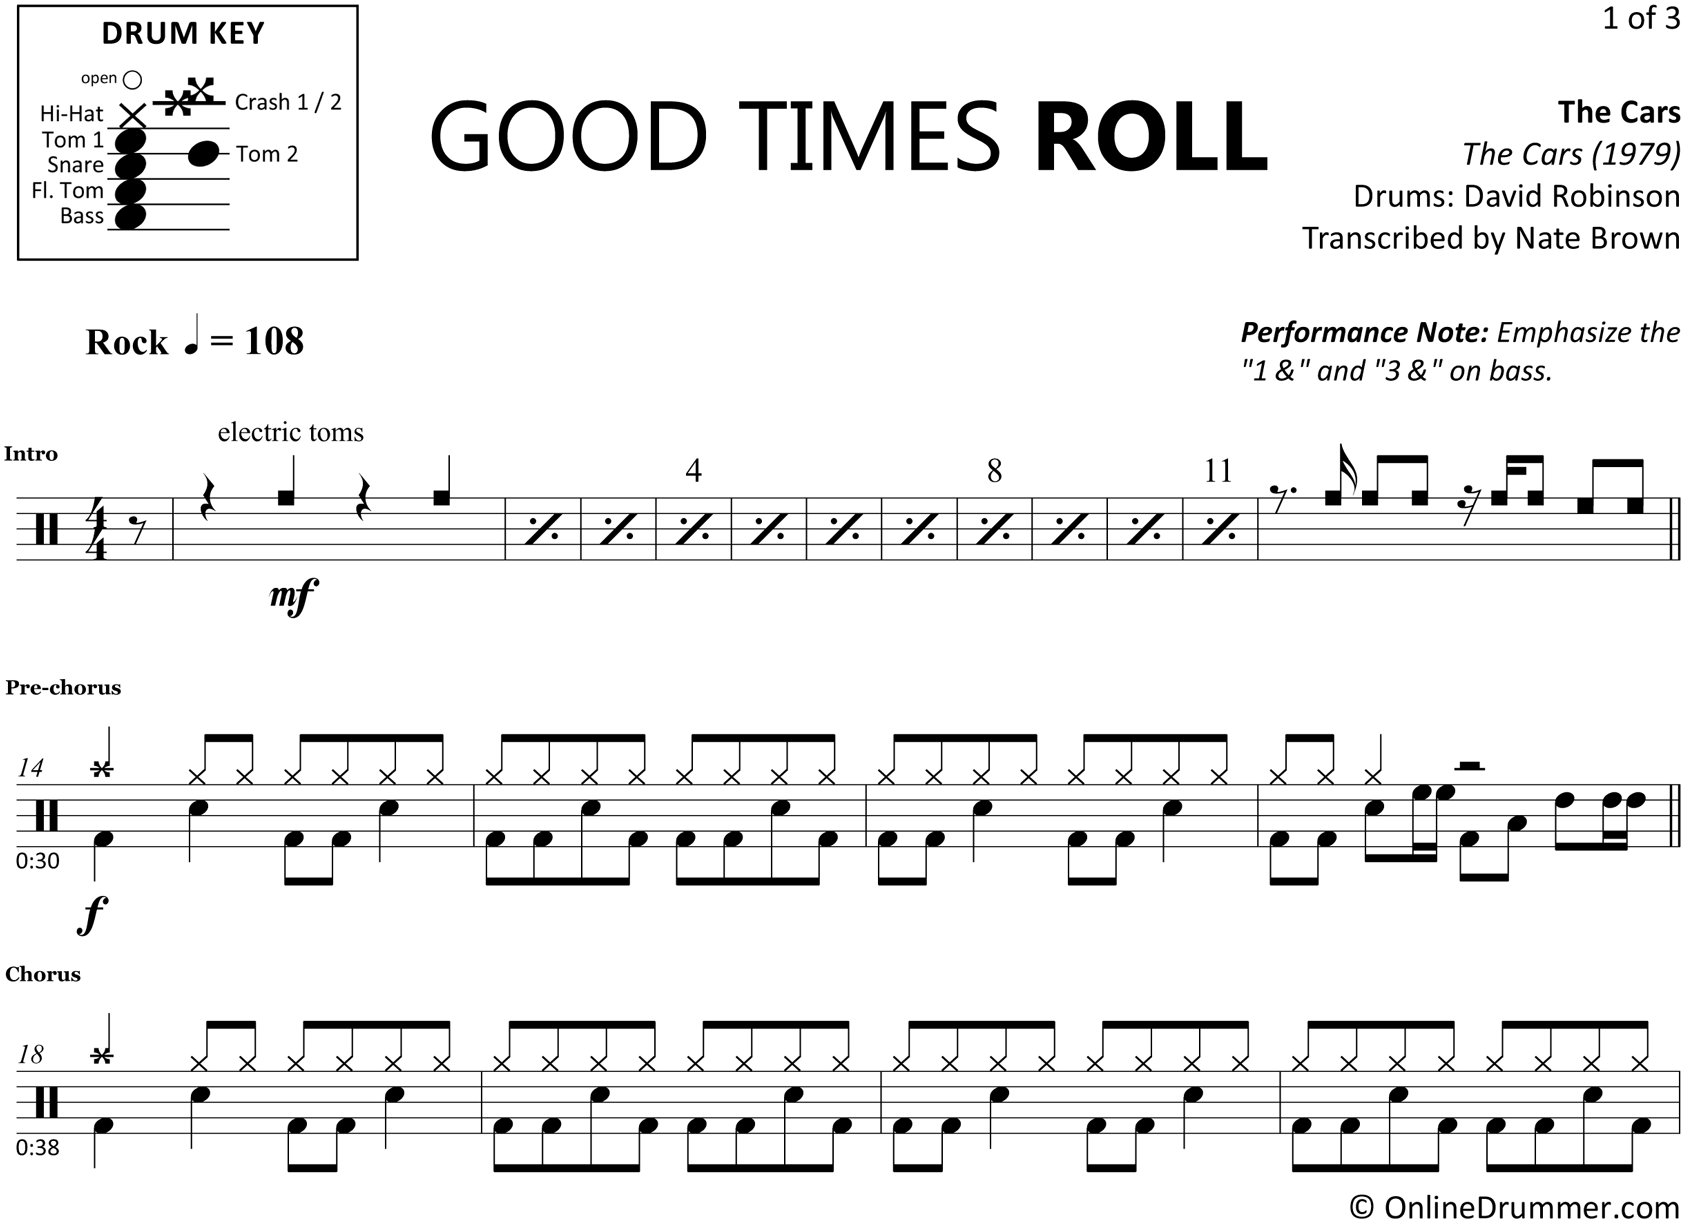 Good Times Roll - The Cars - Drum Sheet Music